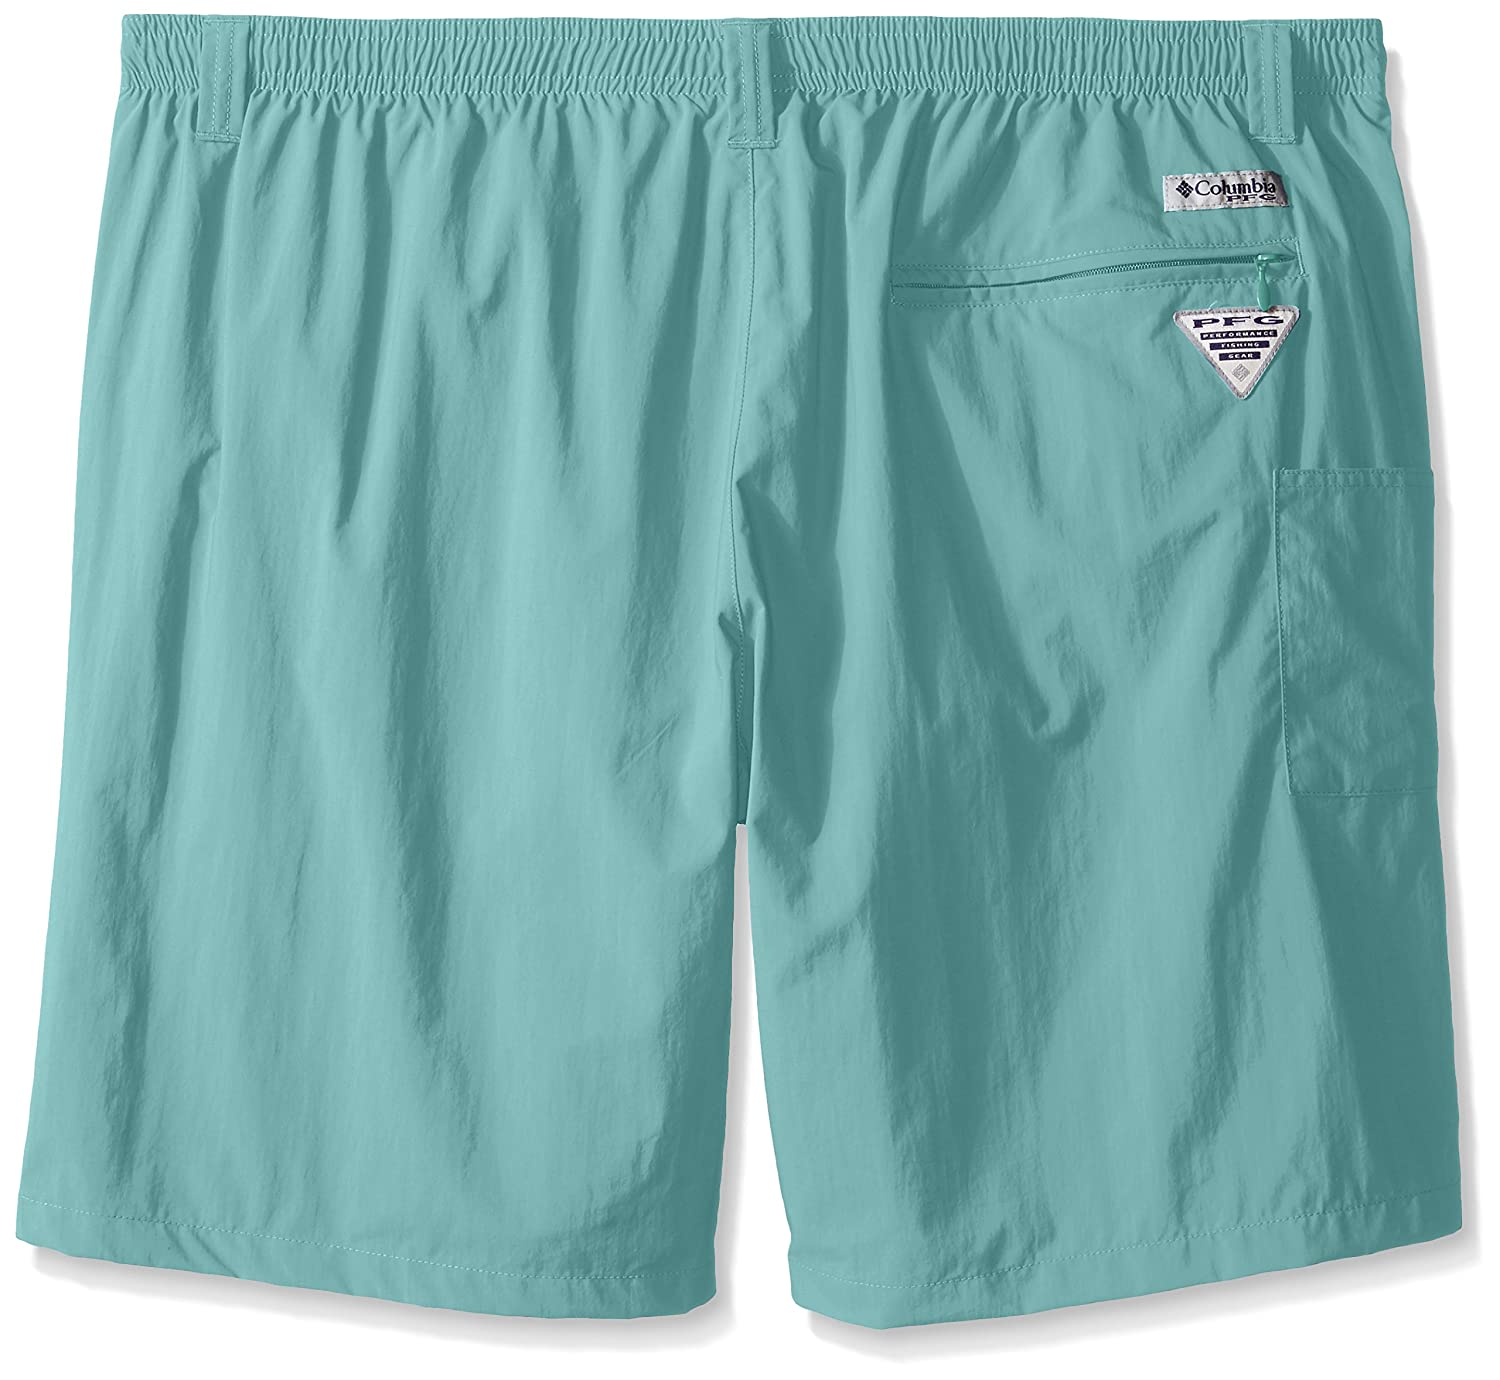 993c42e273 Columbia Columbia Men's Backcast Iii Water Short, Multiple Colors and  Sizes: Amazon.ca: Sports & Outdoors